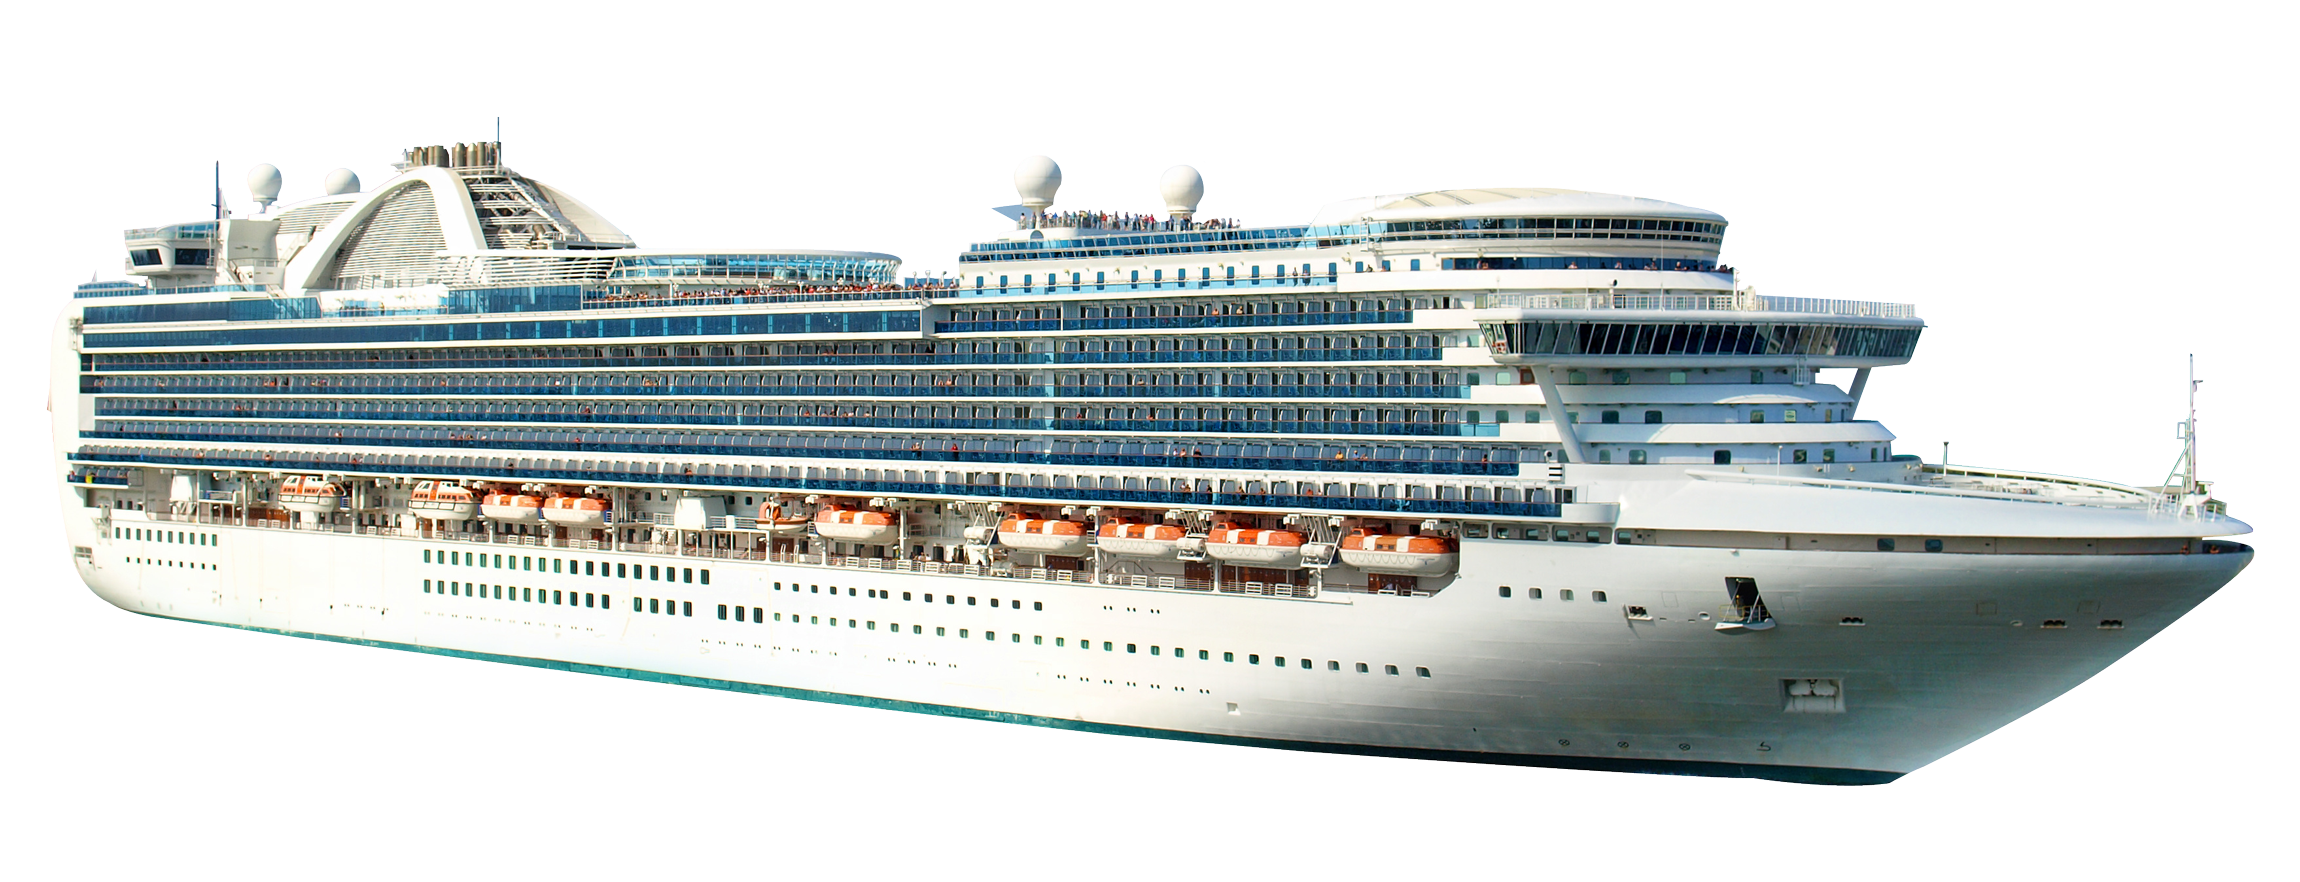 cruise ship png transparent image png transparent best #17090